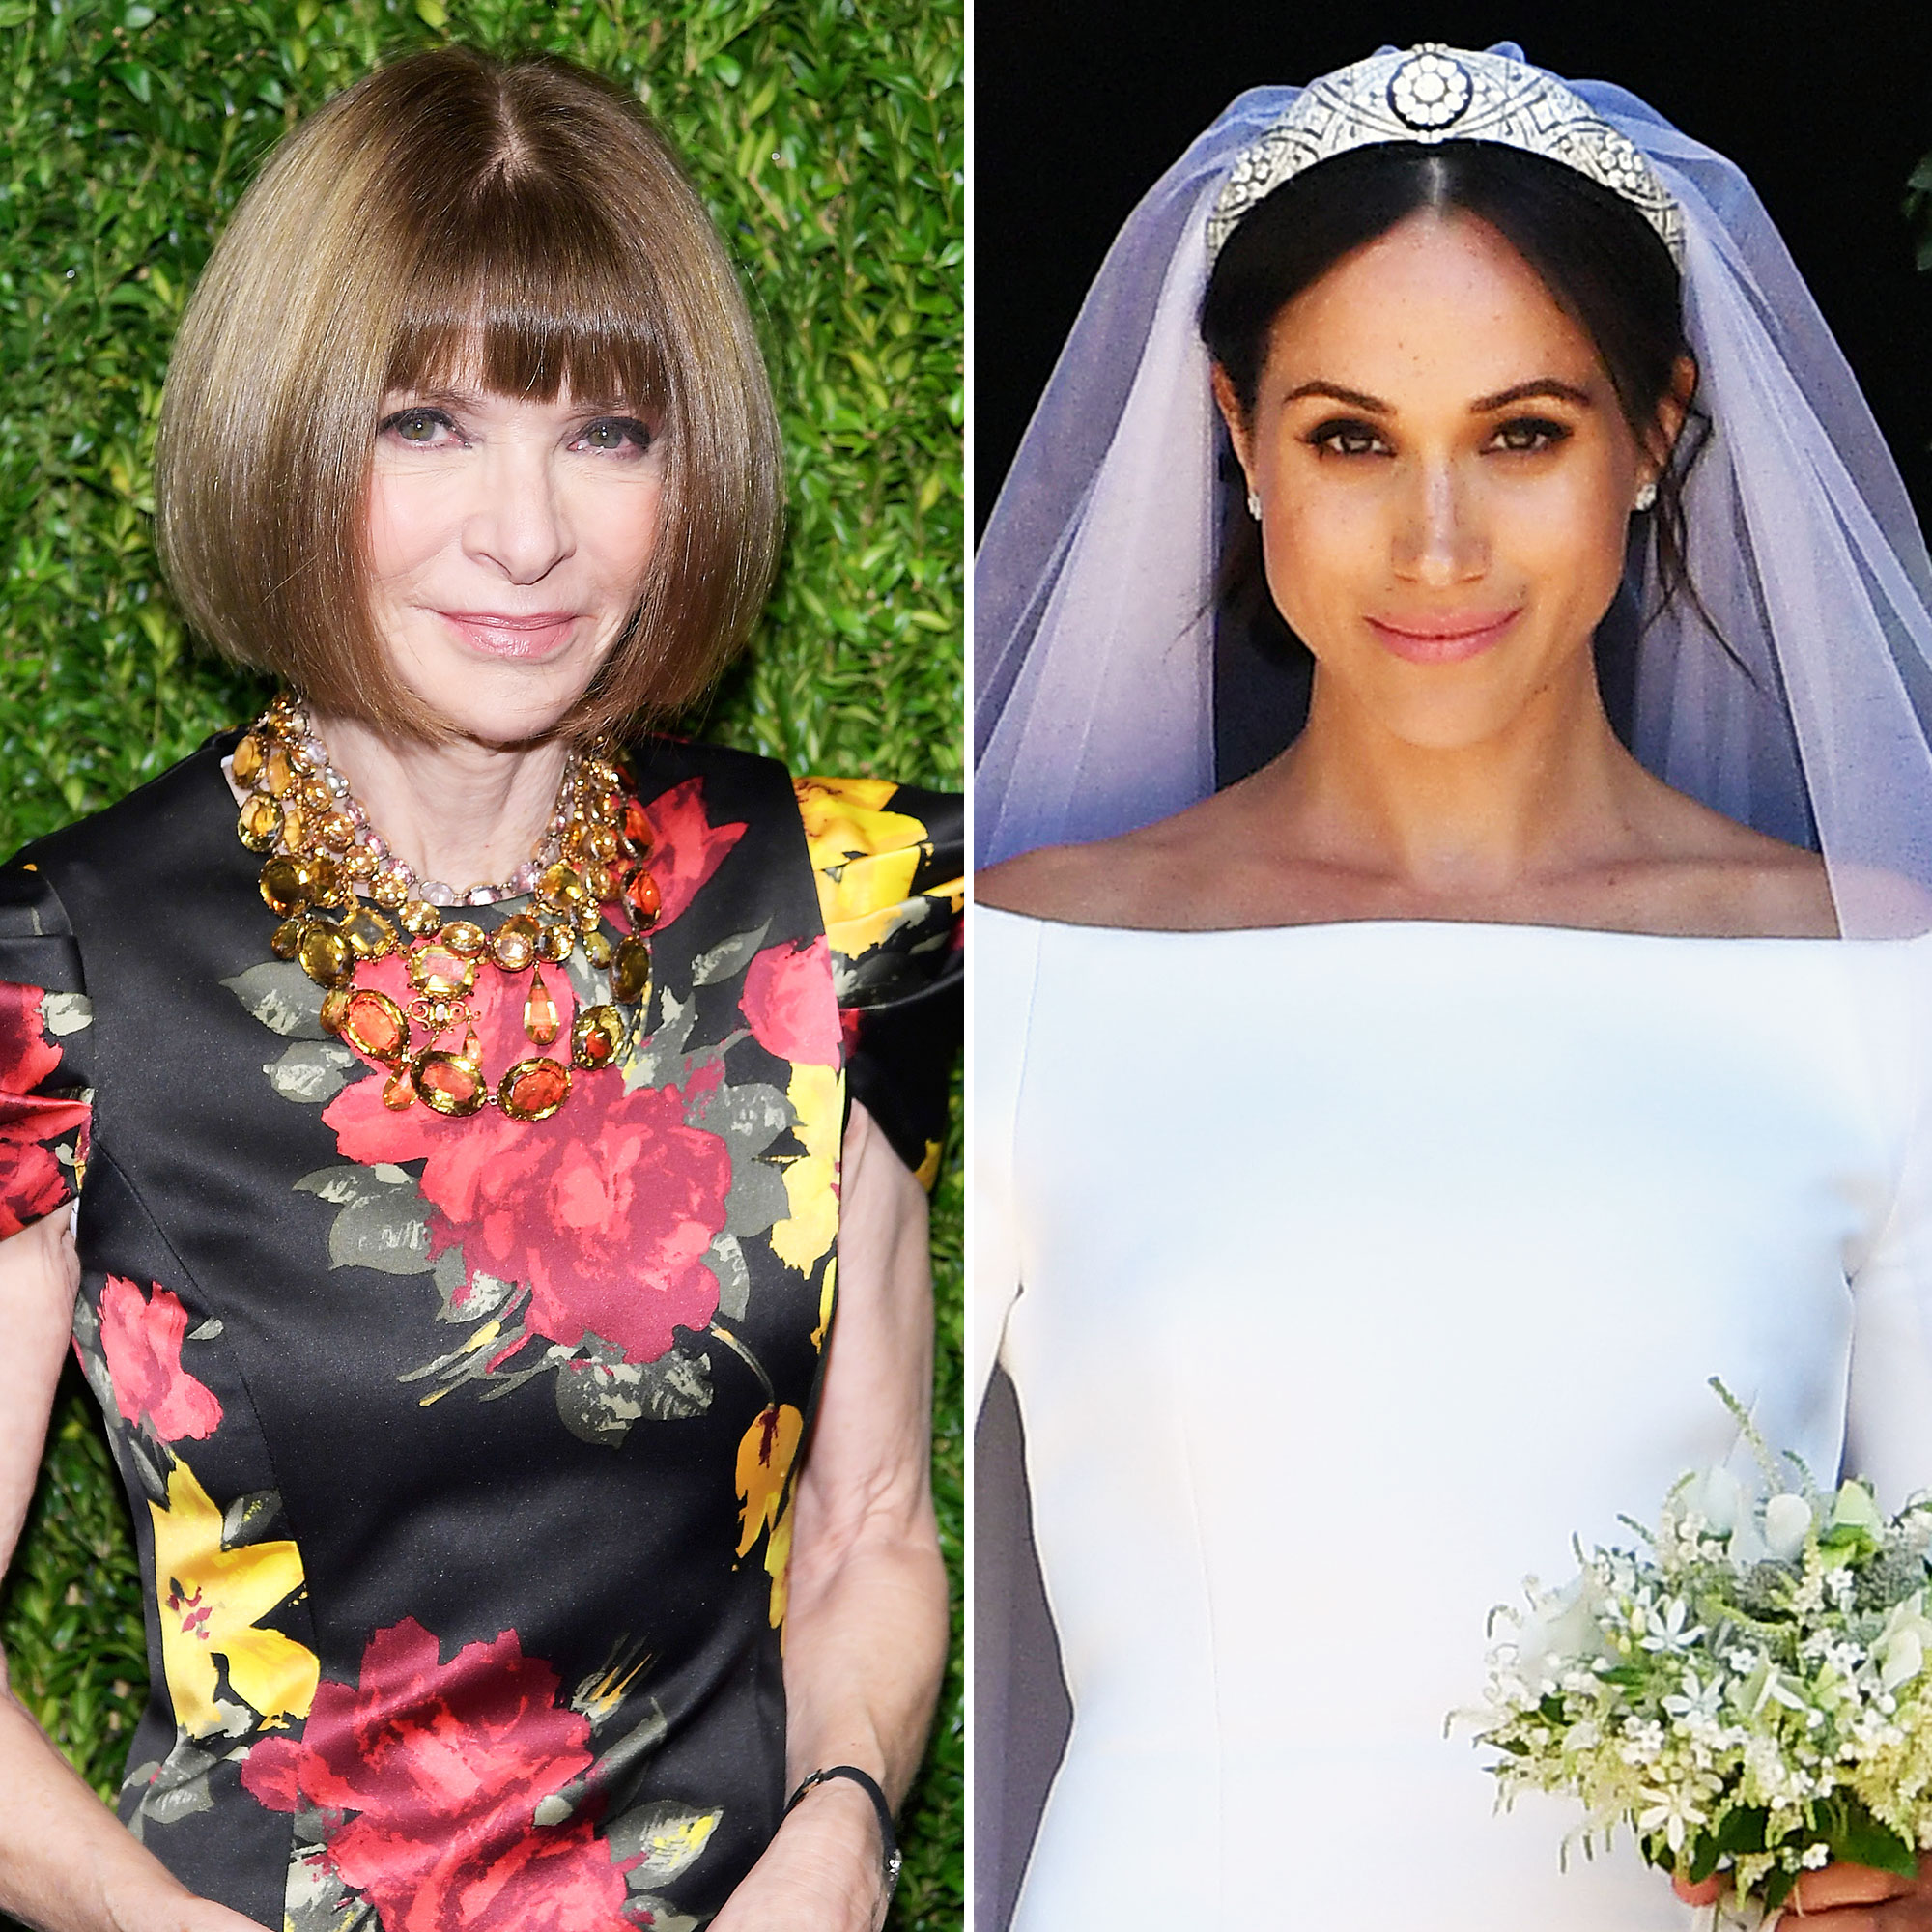 Anna Wintour Thoughts Duchess Meghan Wedding Dress - Anna Wintour and Duchess Meghan on her wedding day.